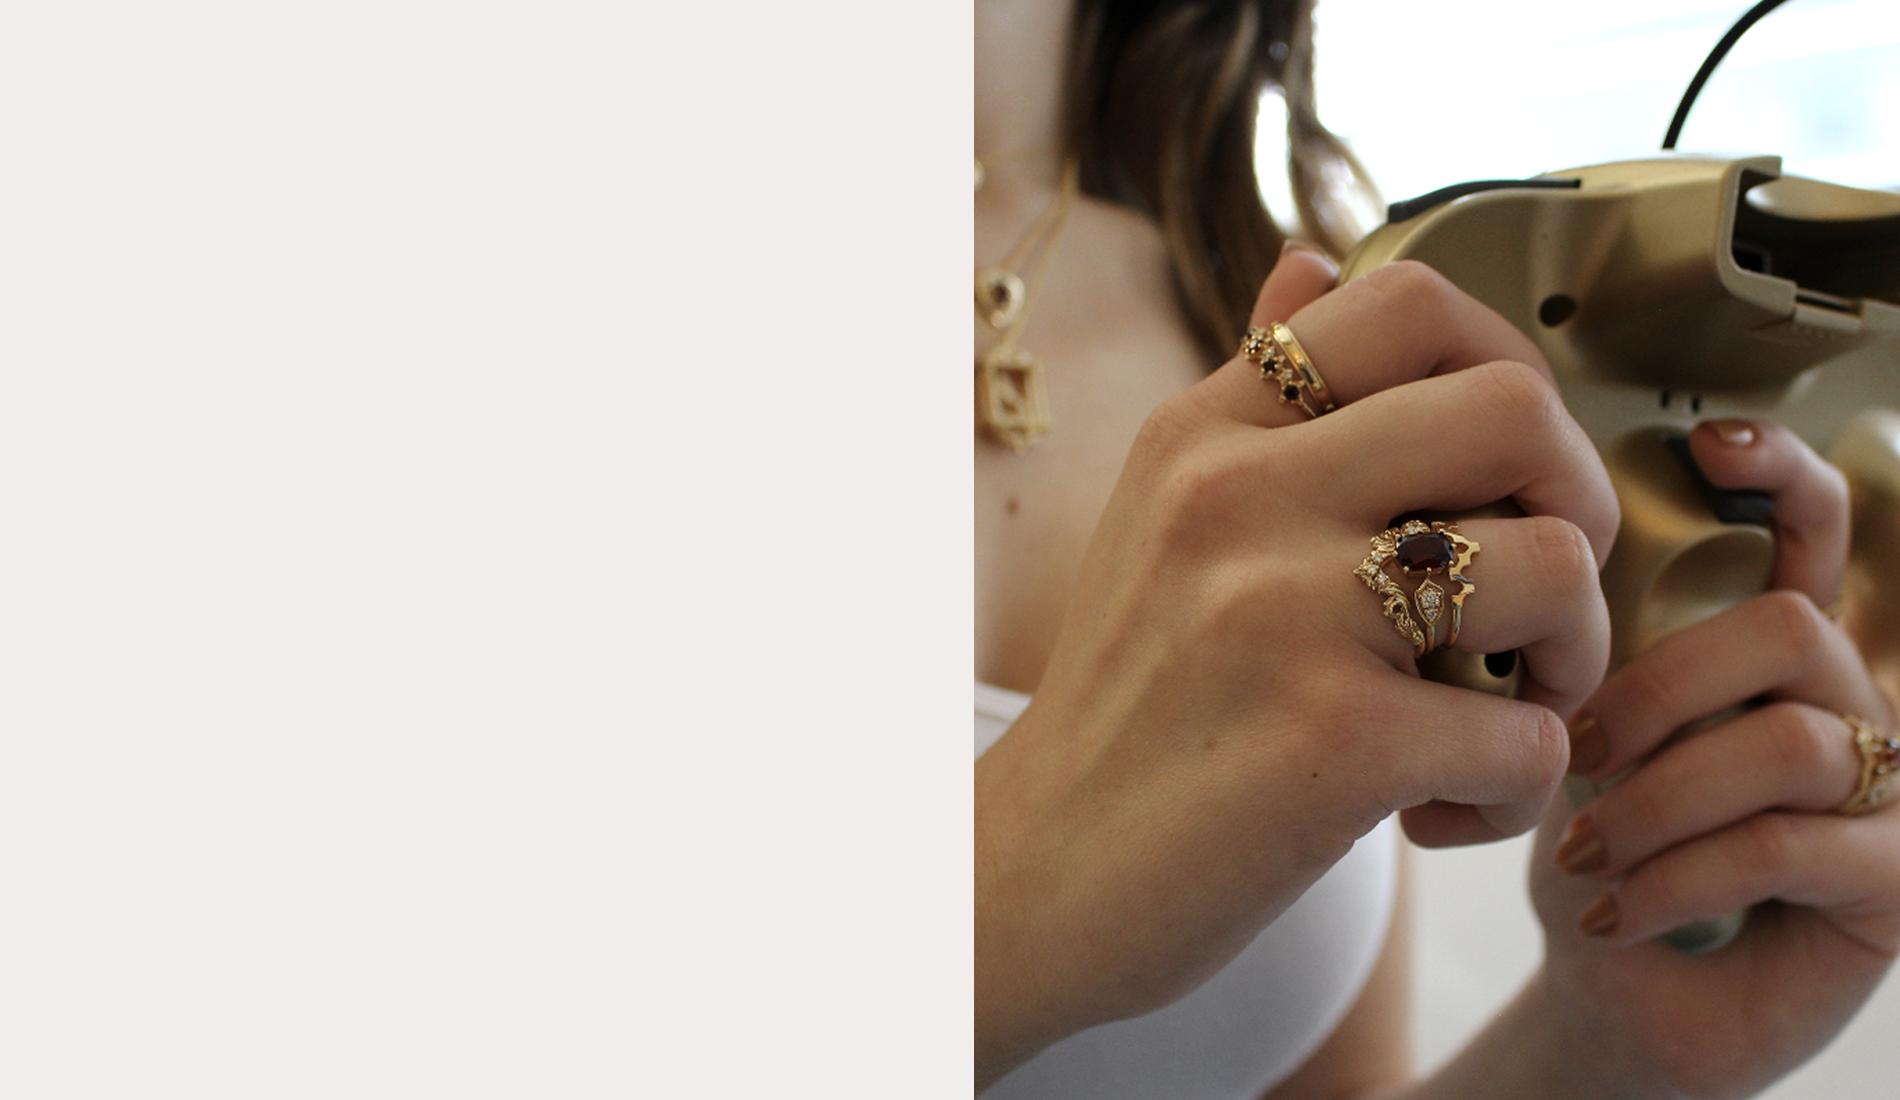 Woman holding a gaming console wearing Soulbound sustainable rings and necklace.